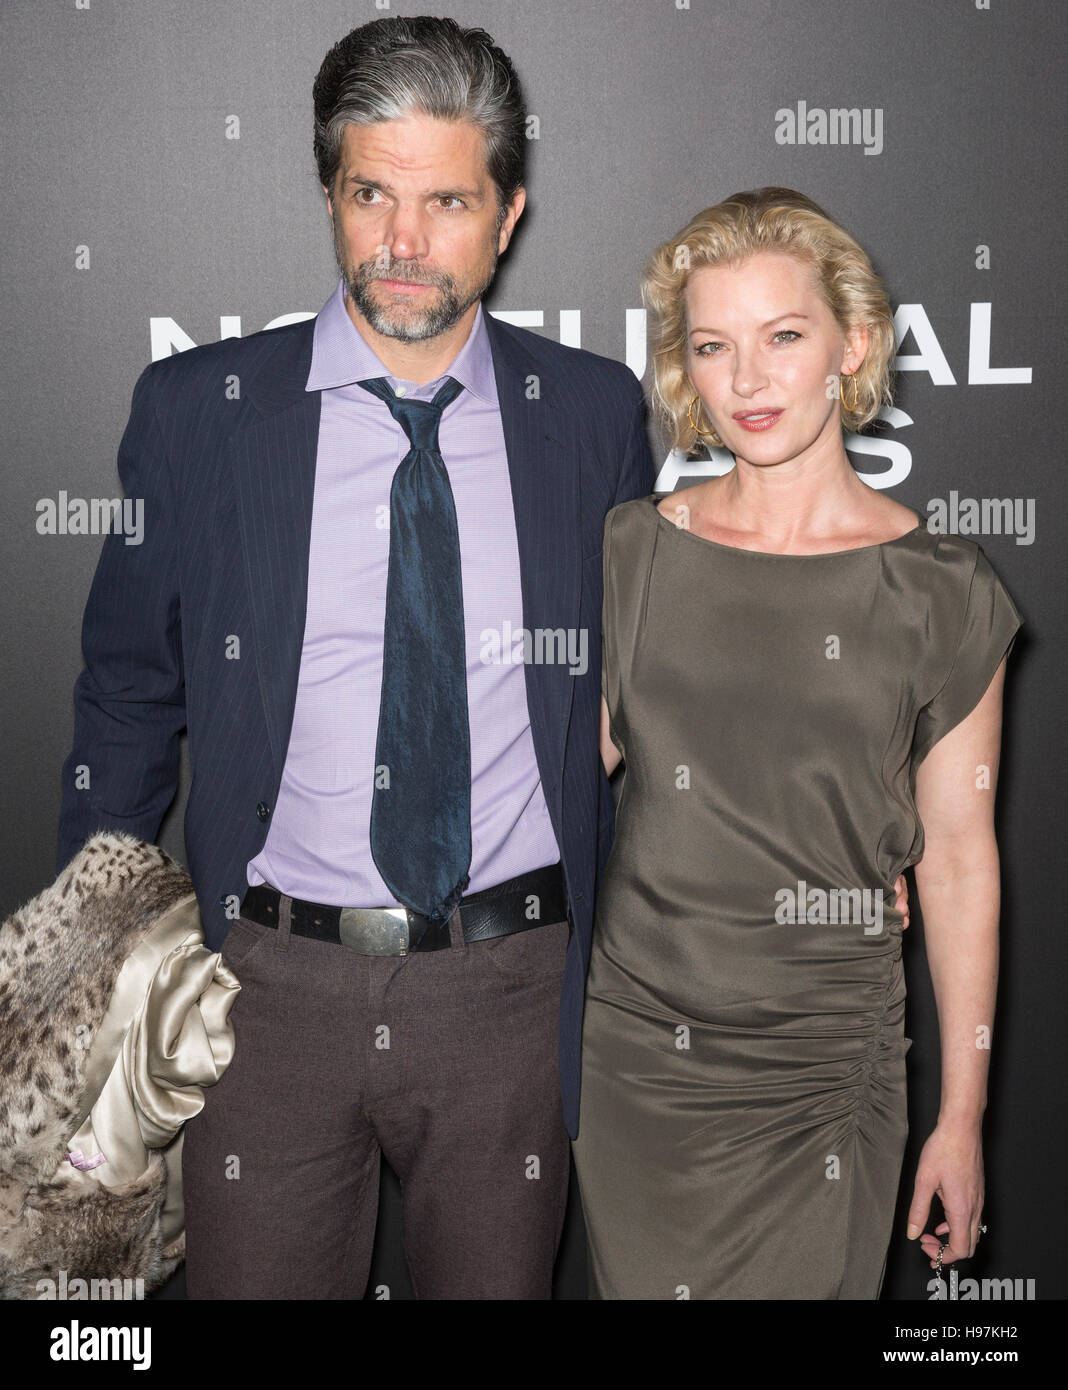 New York City, USA - November 17, 2016: Tod Williams and actress Gretchen Mol attend the 'Nocturnal Animals' New Stock Photo